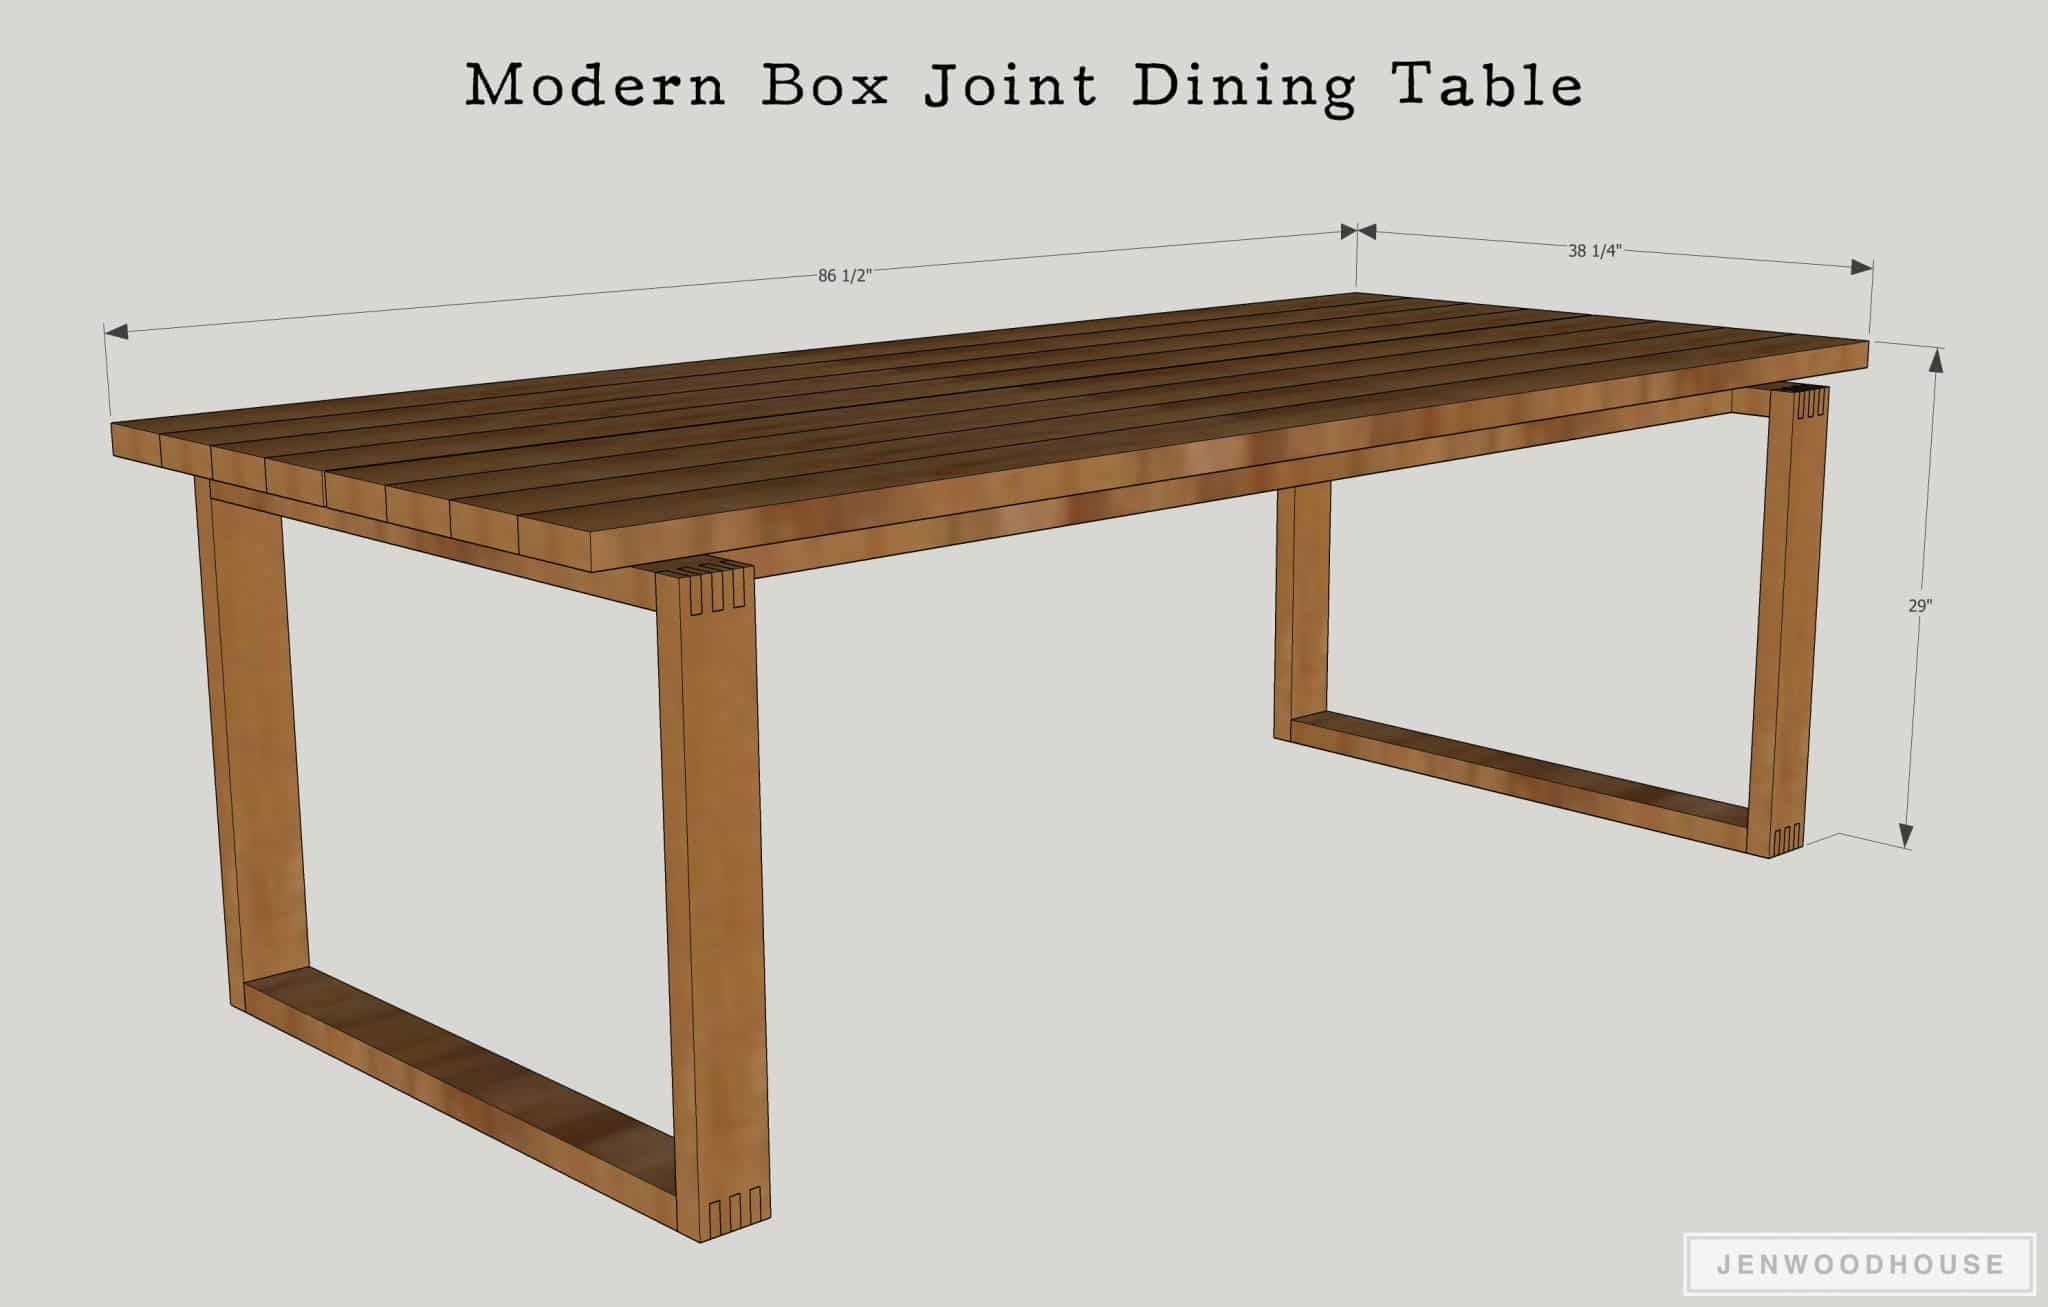 How to build a Modern Box Joint Dining Table : Modern Box Joint Dining Table Dimensions from jenwoodhouse.com size 2978 x 1901 jpeg 1054kB